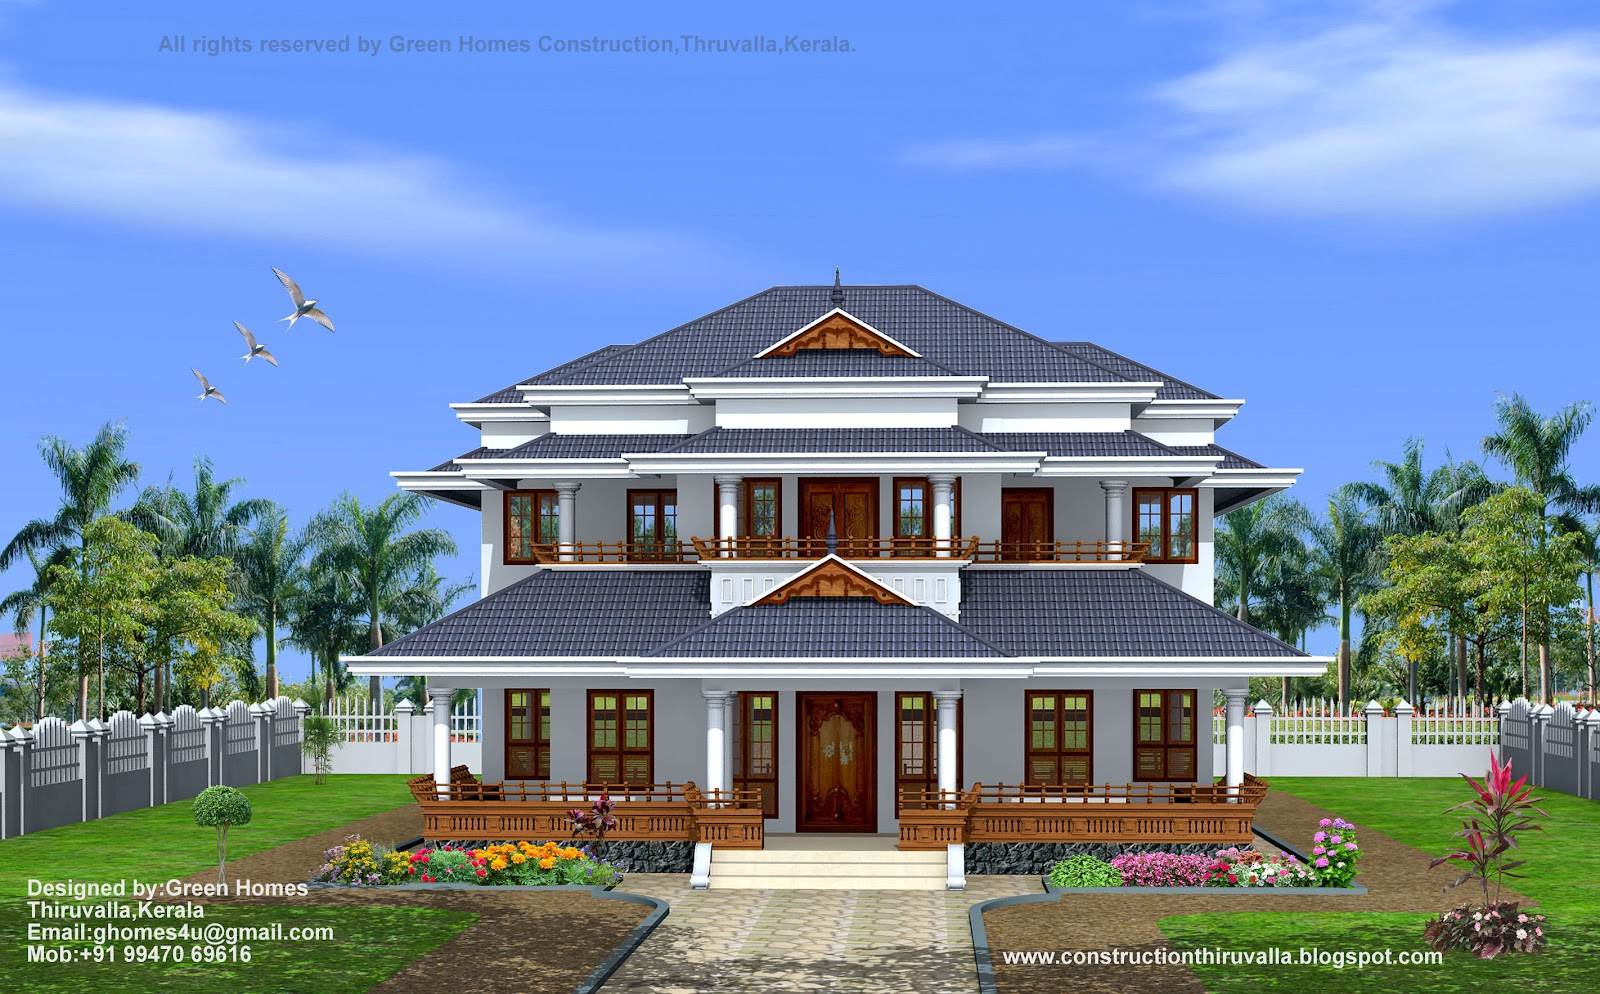 Green homes traditional style kerala home design 3450 sq feet for Home construction design